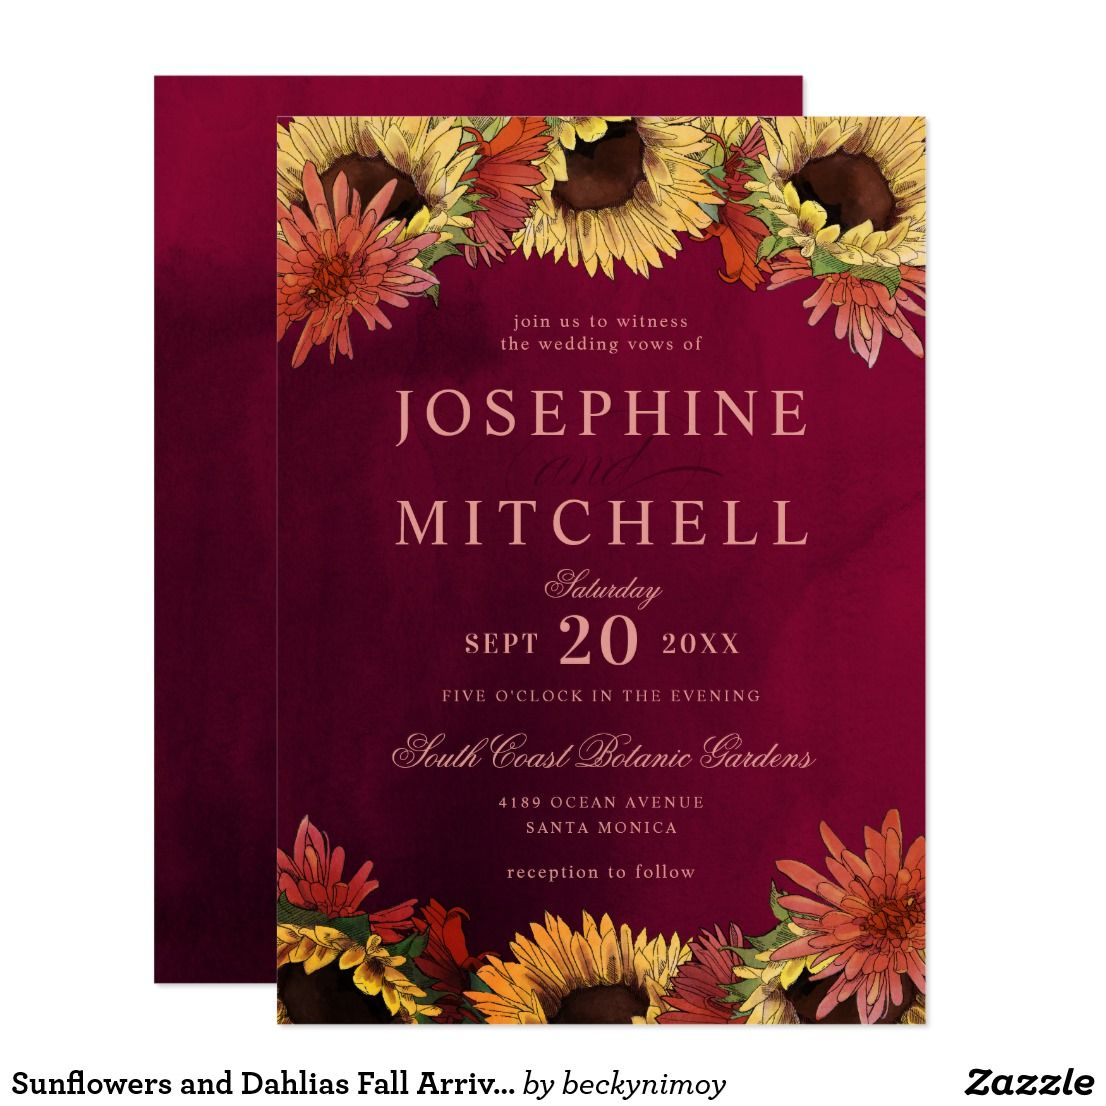 Sunflowers and Dahlias Fall Arrival Burgundy Red Invitation ...